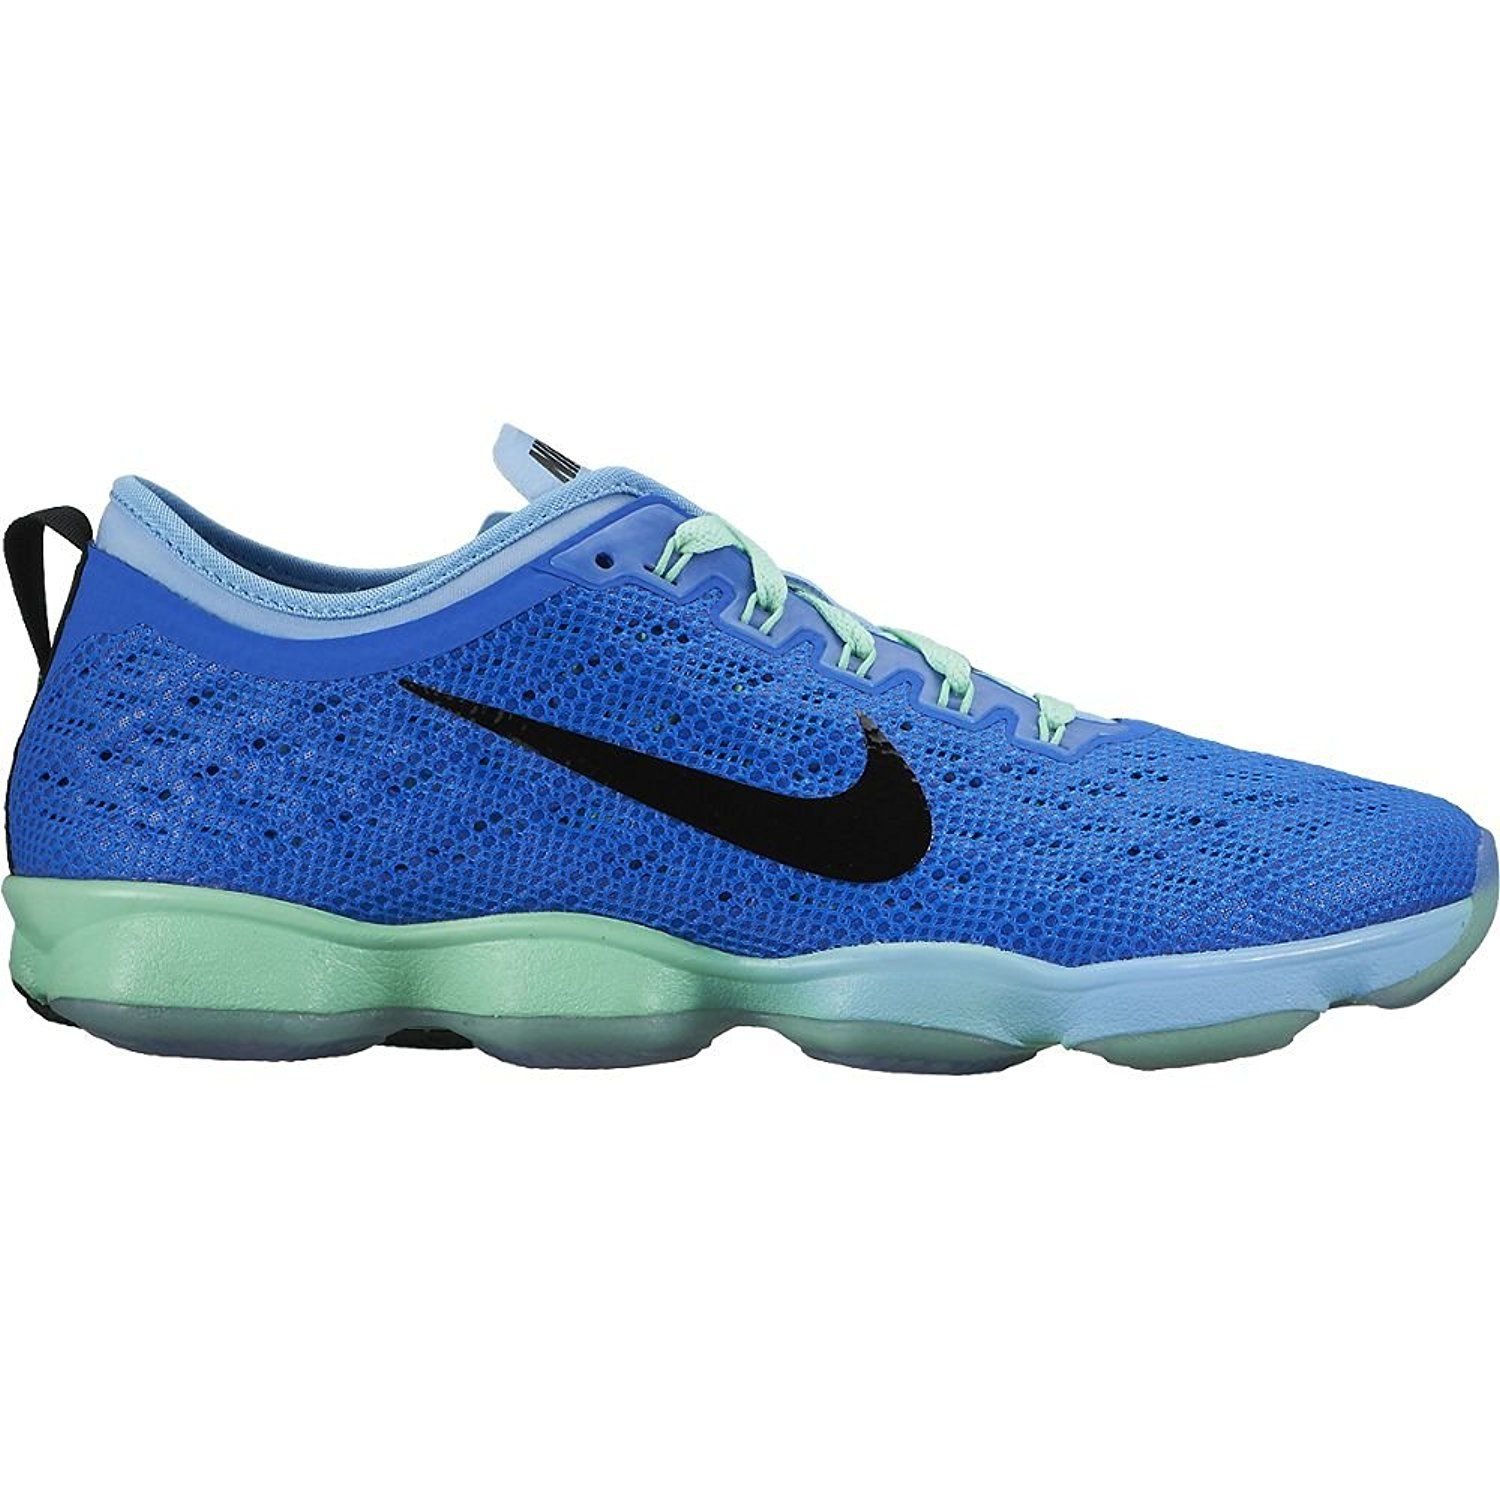 Nike Zoom Fit Agility Sz 7 Womens Cross Training Shoes Blue New In Box >>